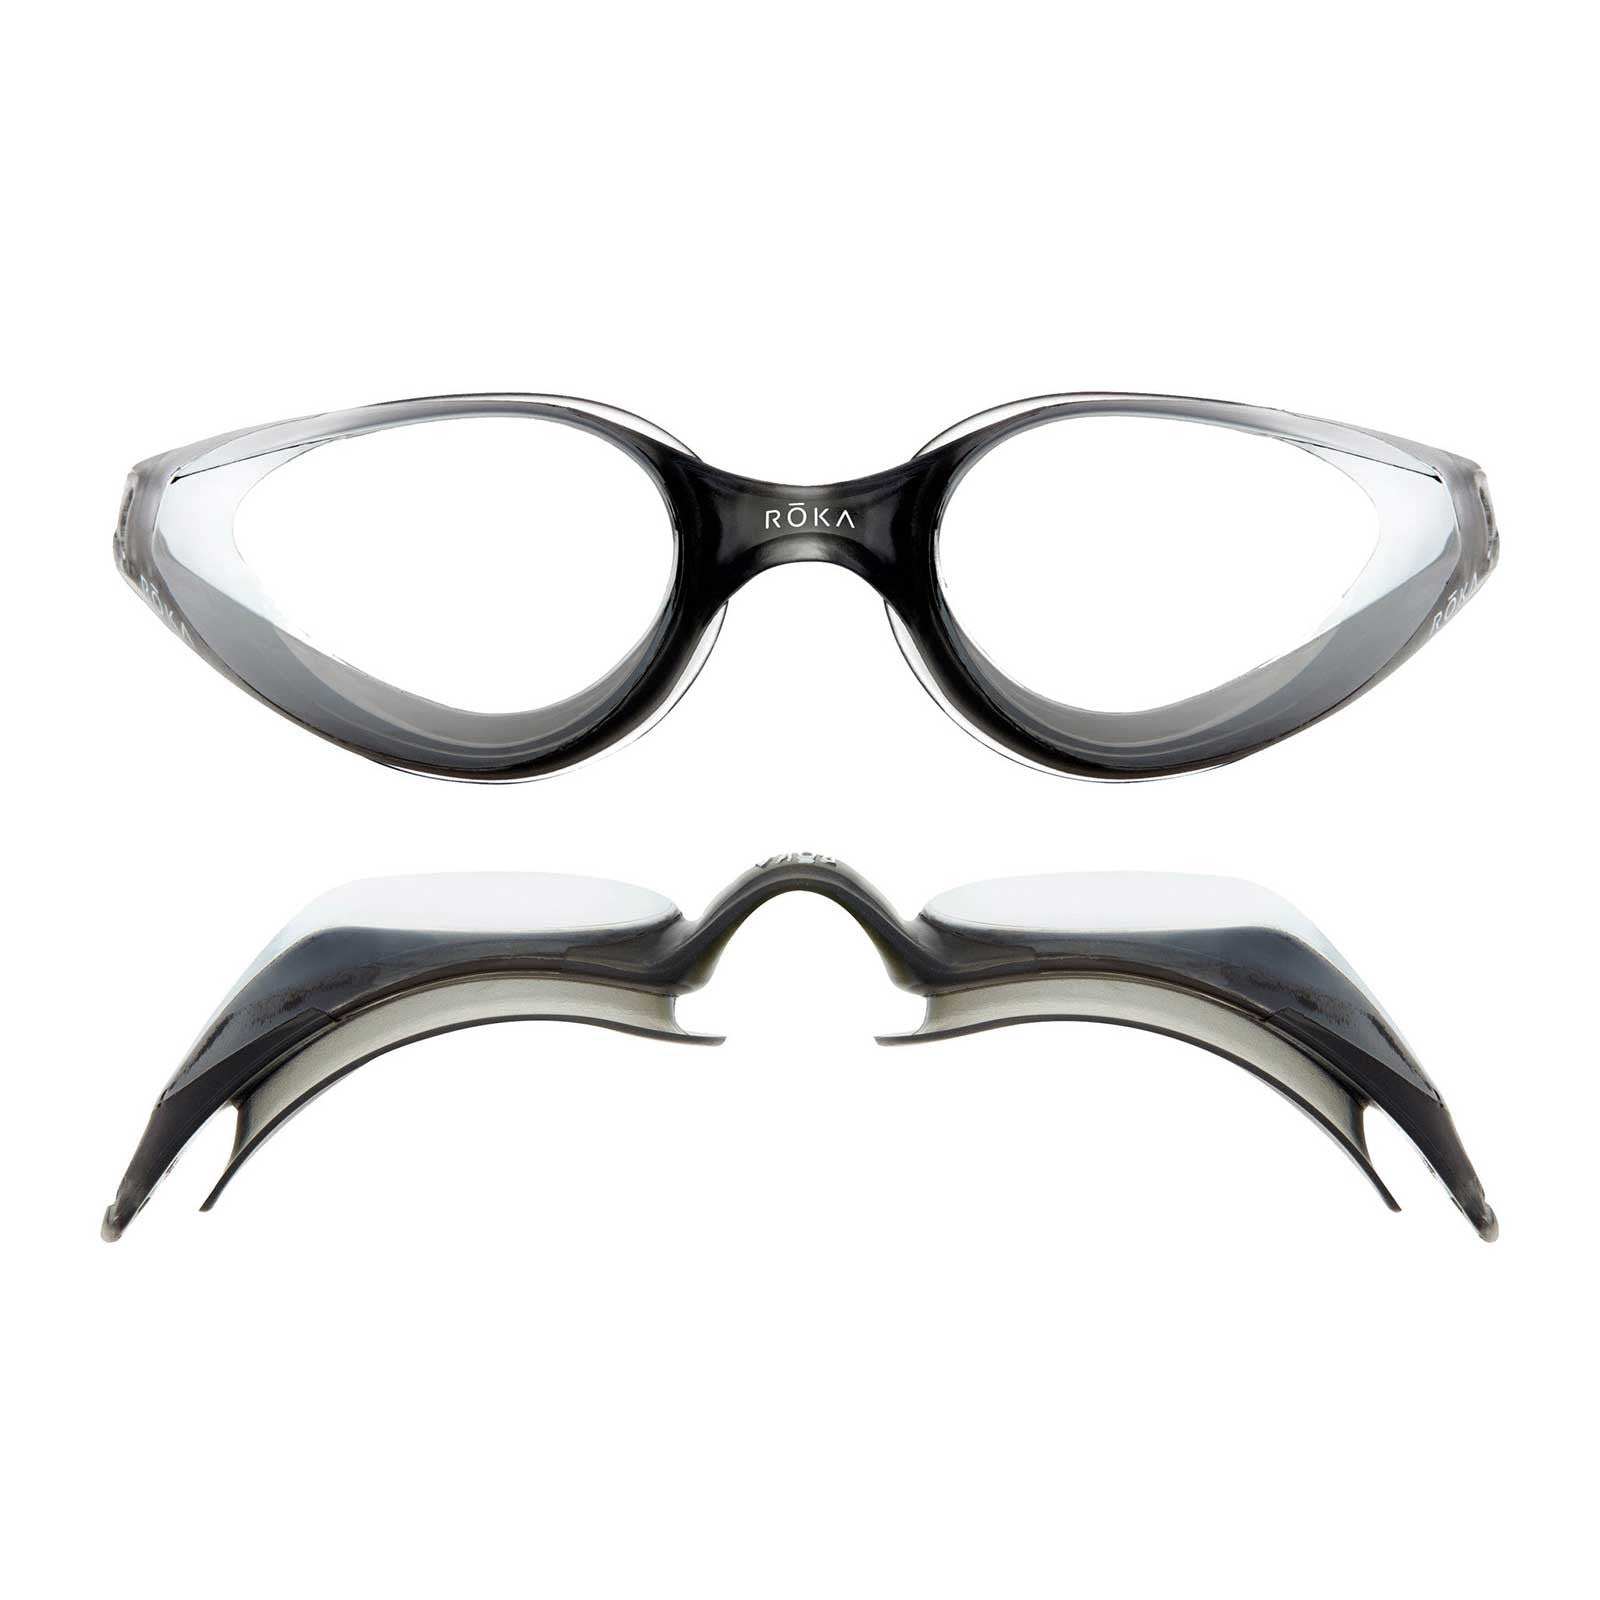 a3493ad3352 R1 Goggles - Open Water Swimming Goggles